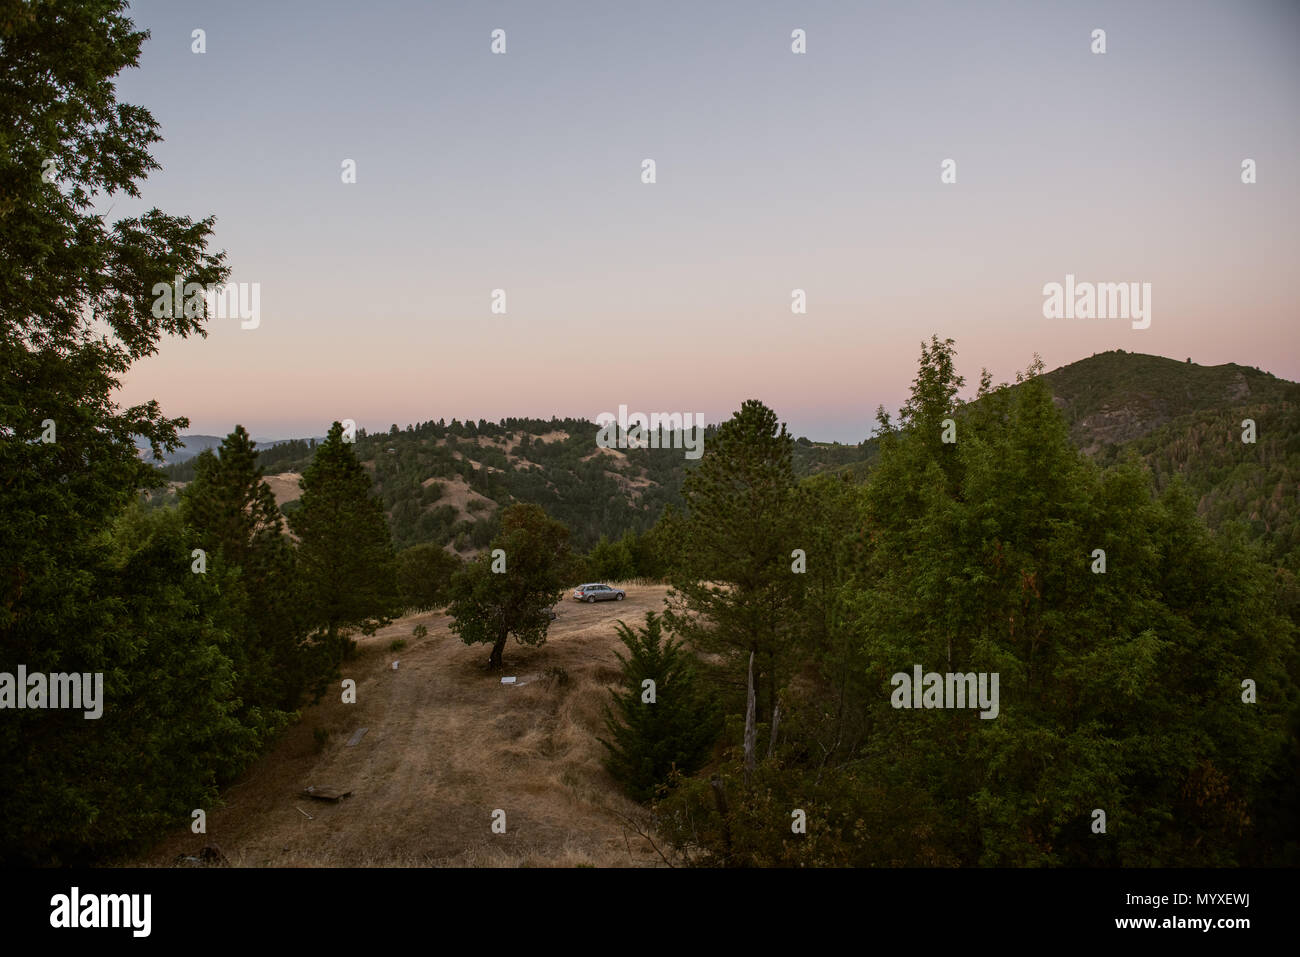 Location en camping dans la nature Photo Stock